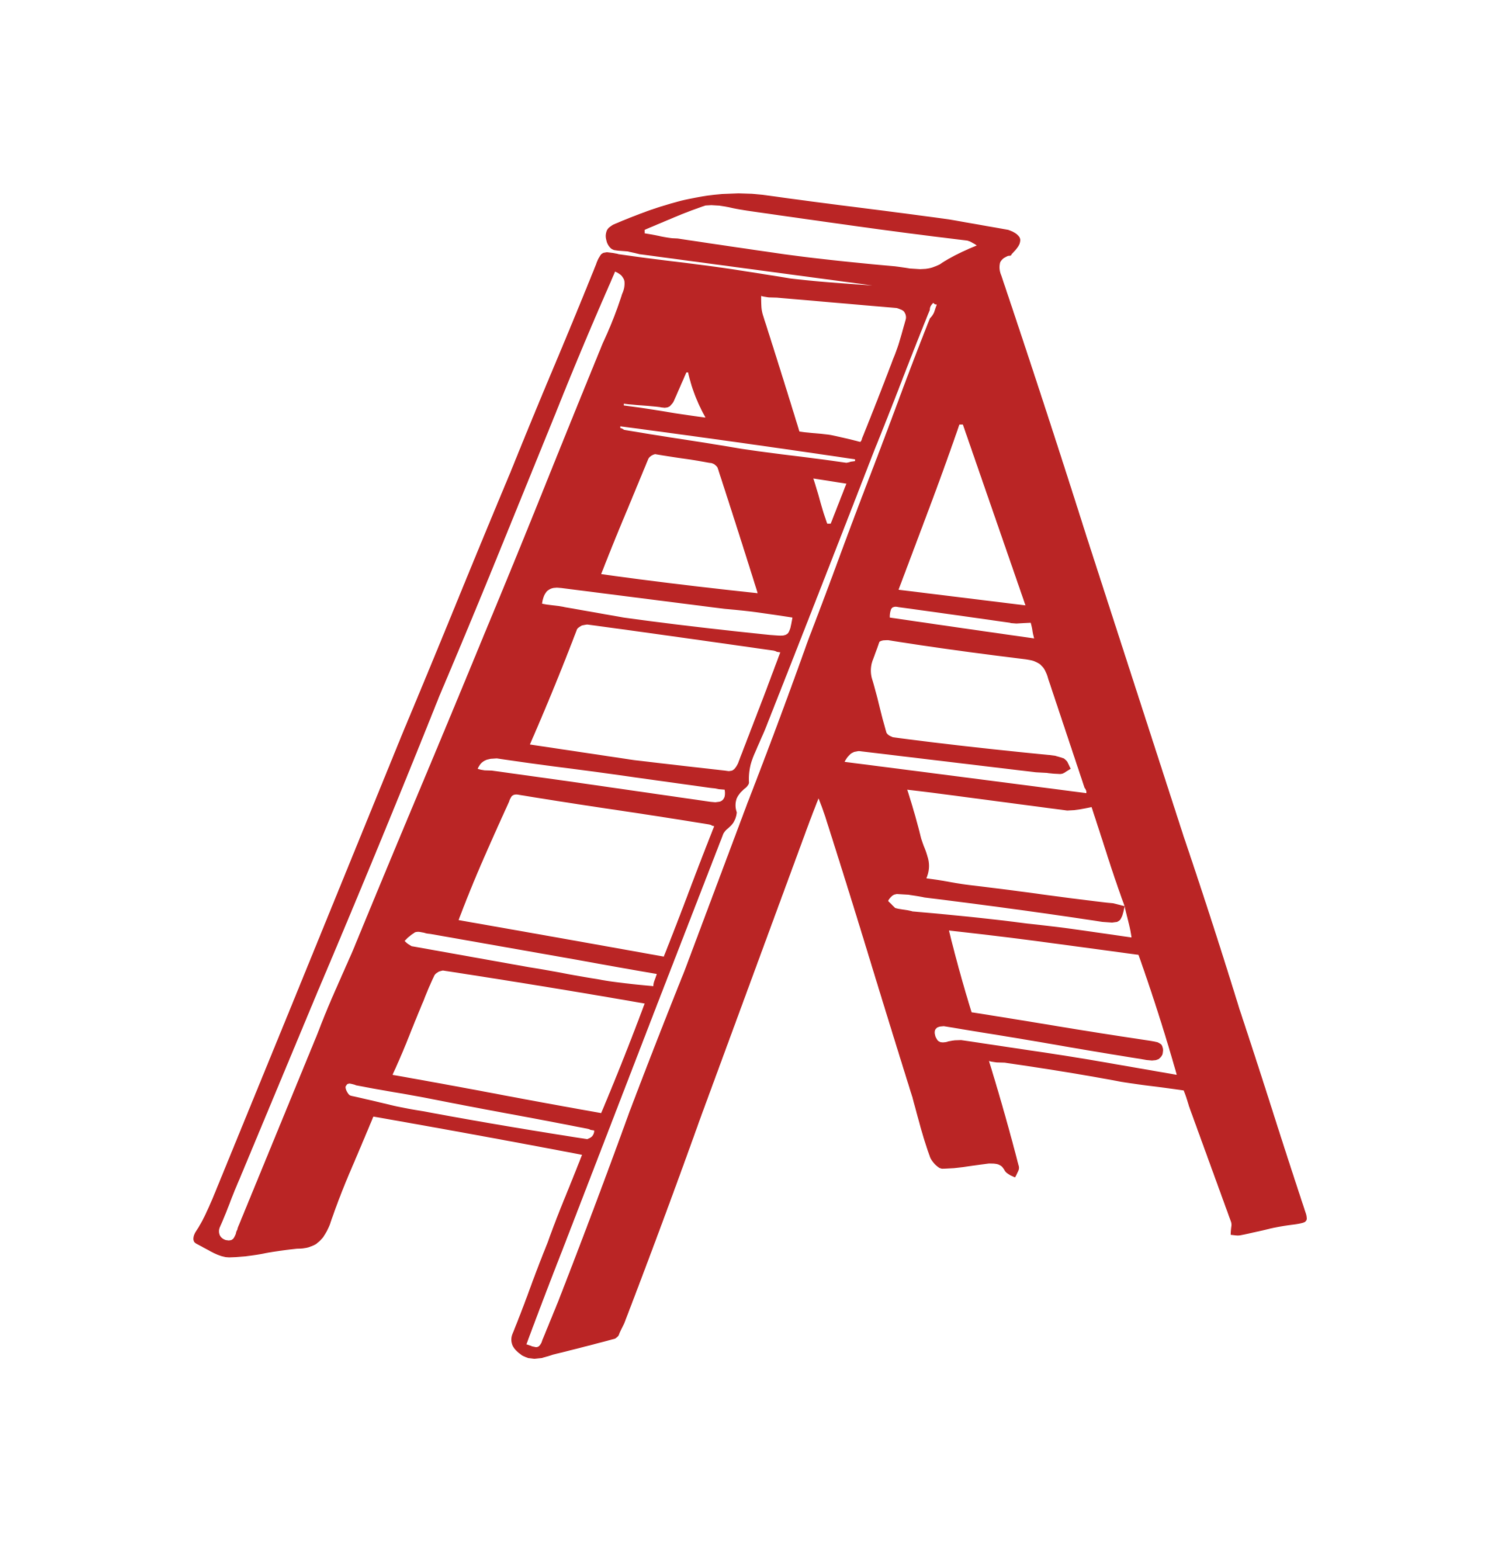 Red Ladder Web Design